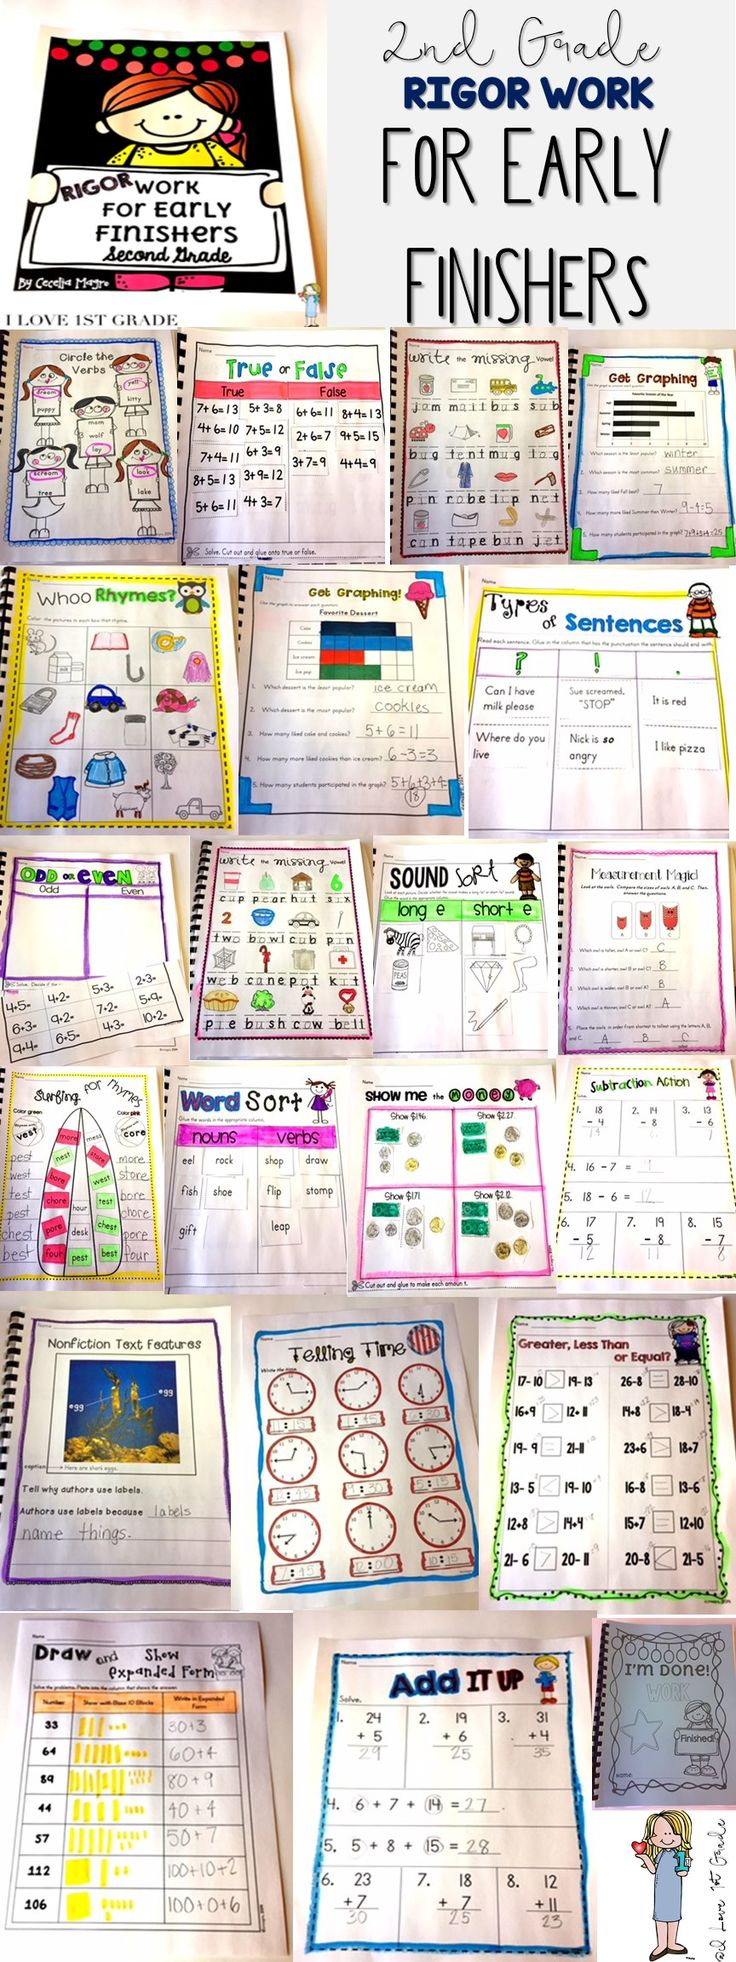 71 pages of original second grade Math and English Language Arts activities perfectly aligned to Common Core standards! Each page was carefully crafted with the second grader in mind. Modalities vary so students stay highly engaged. With this, students will have rigorous work to do once they have completed assignments!